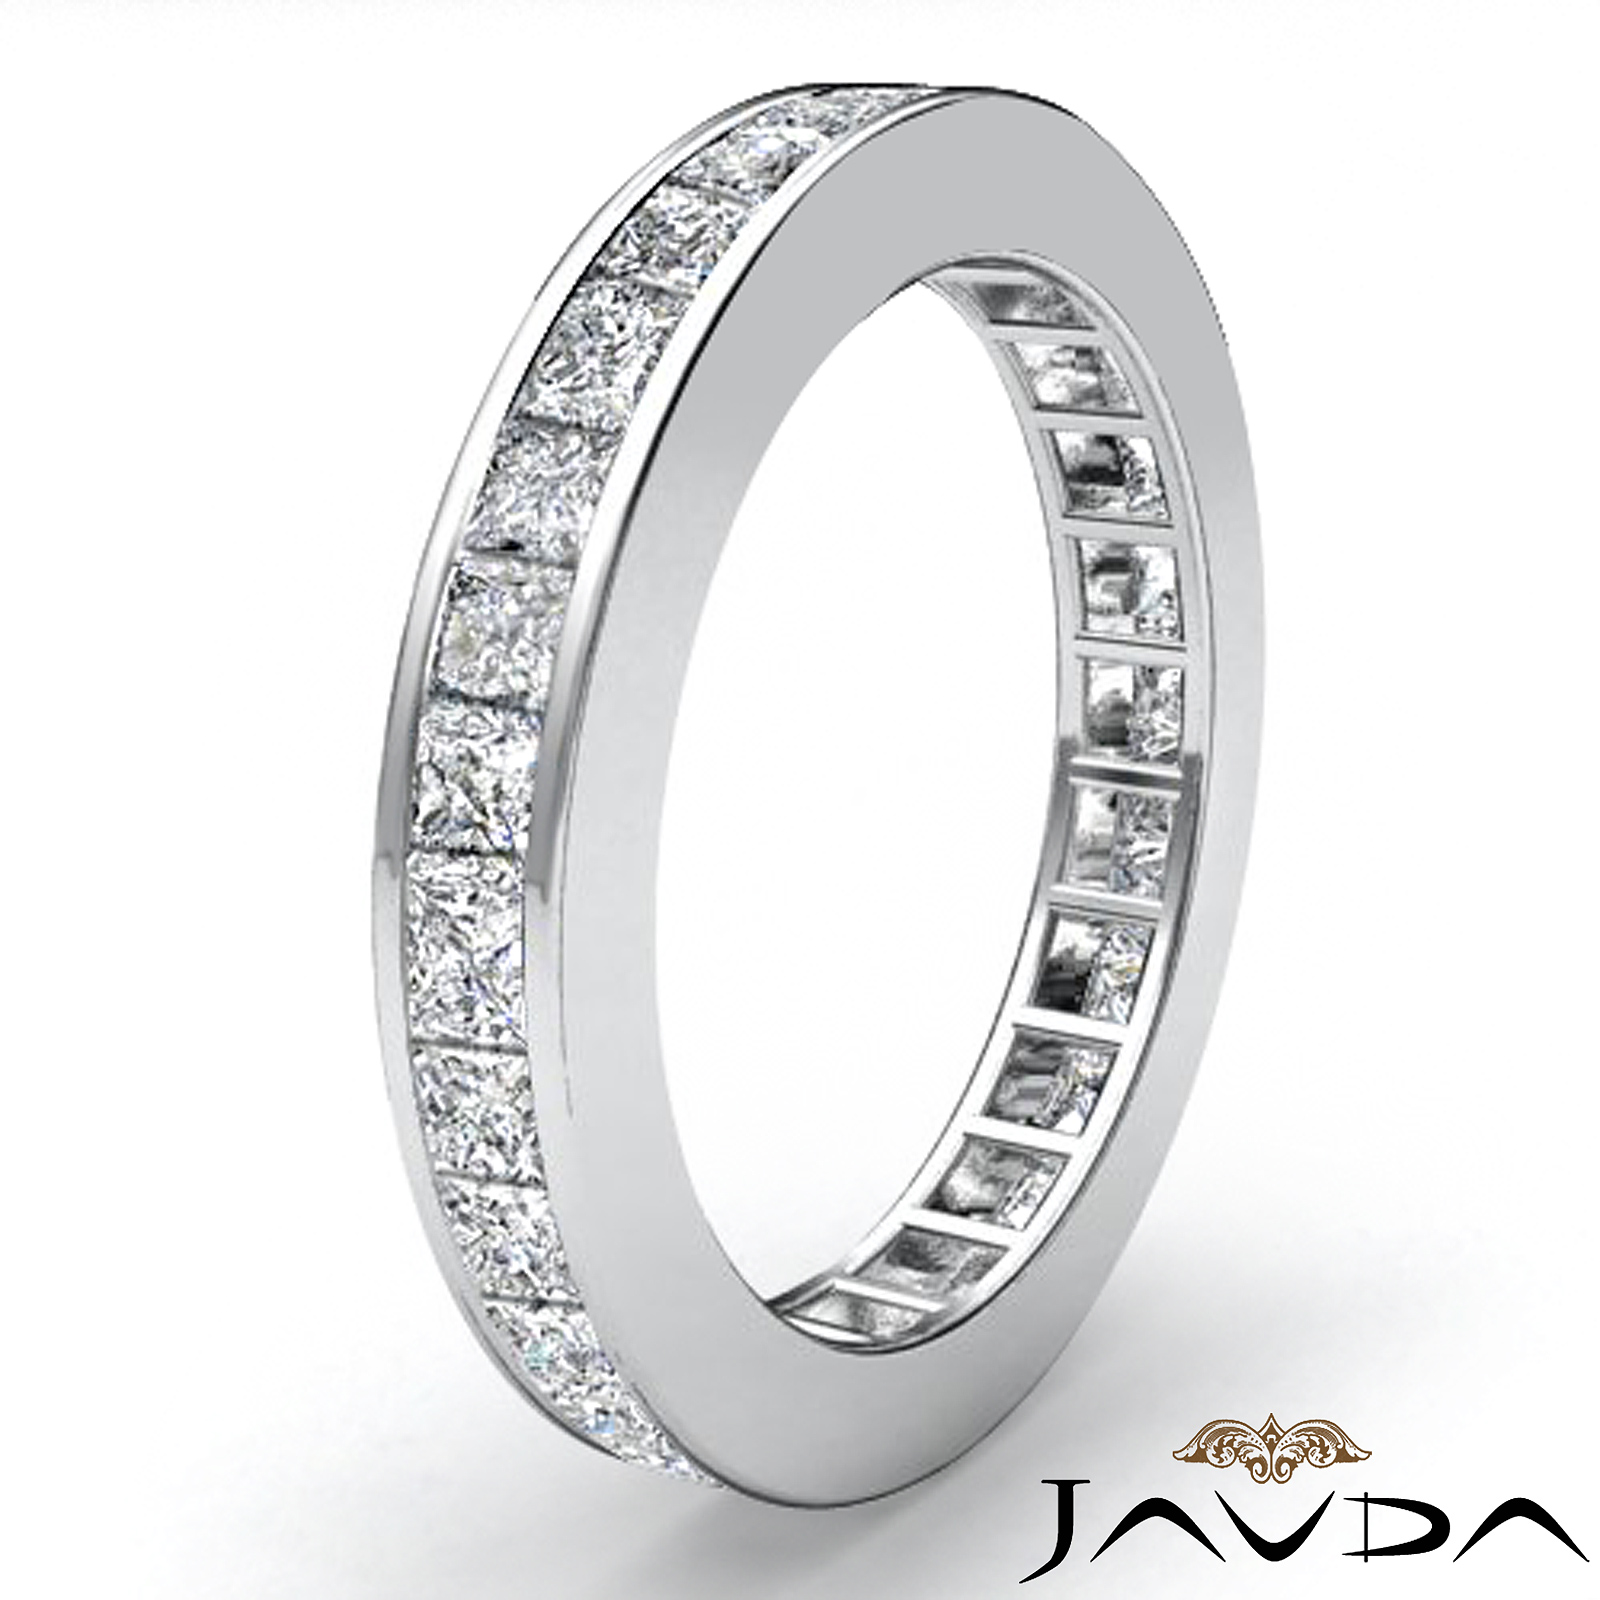 only pave princess band pav tsavorite bands green eternity jackson hole karat jewelry products company